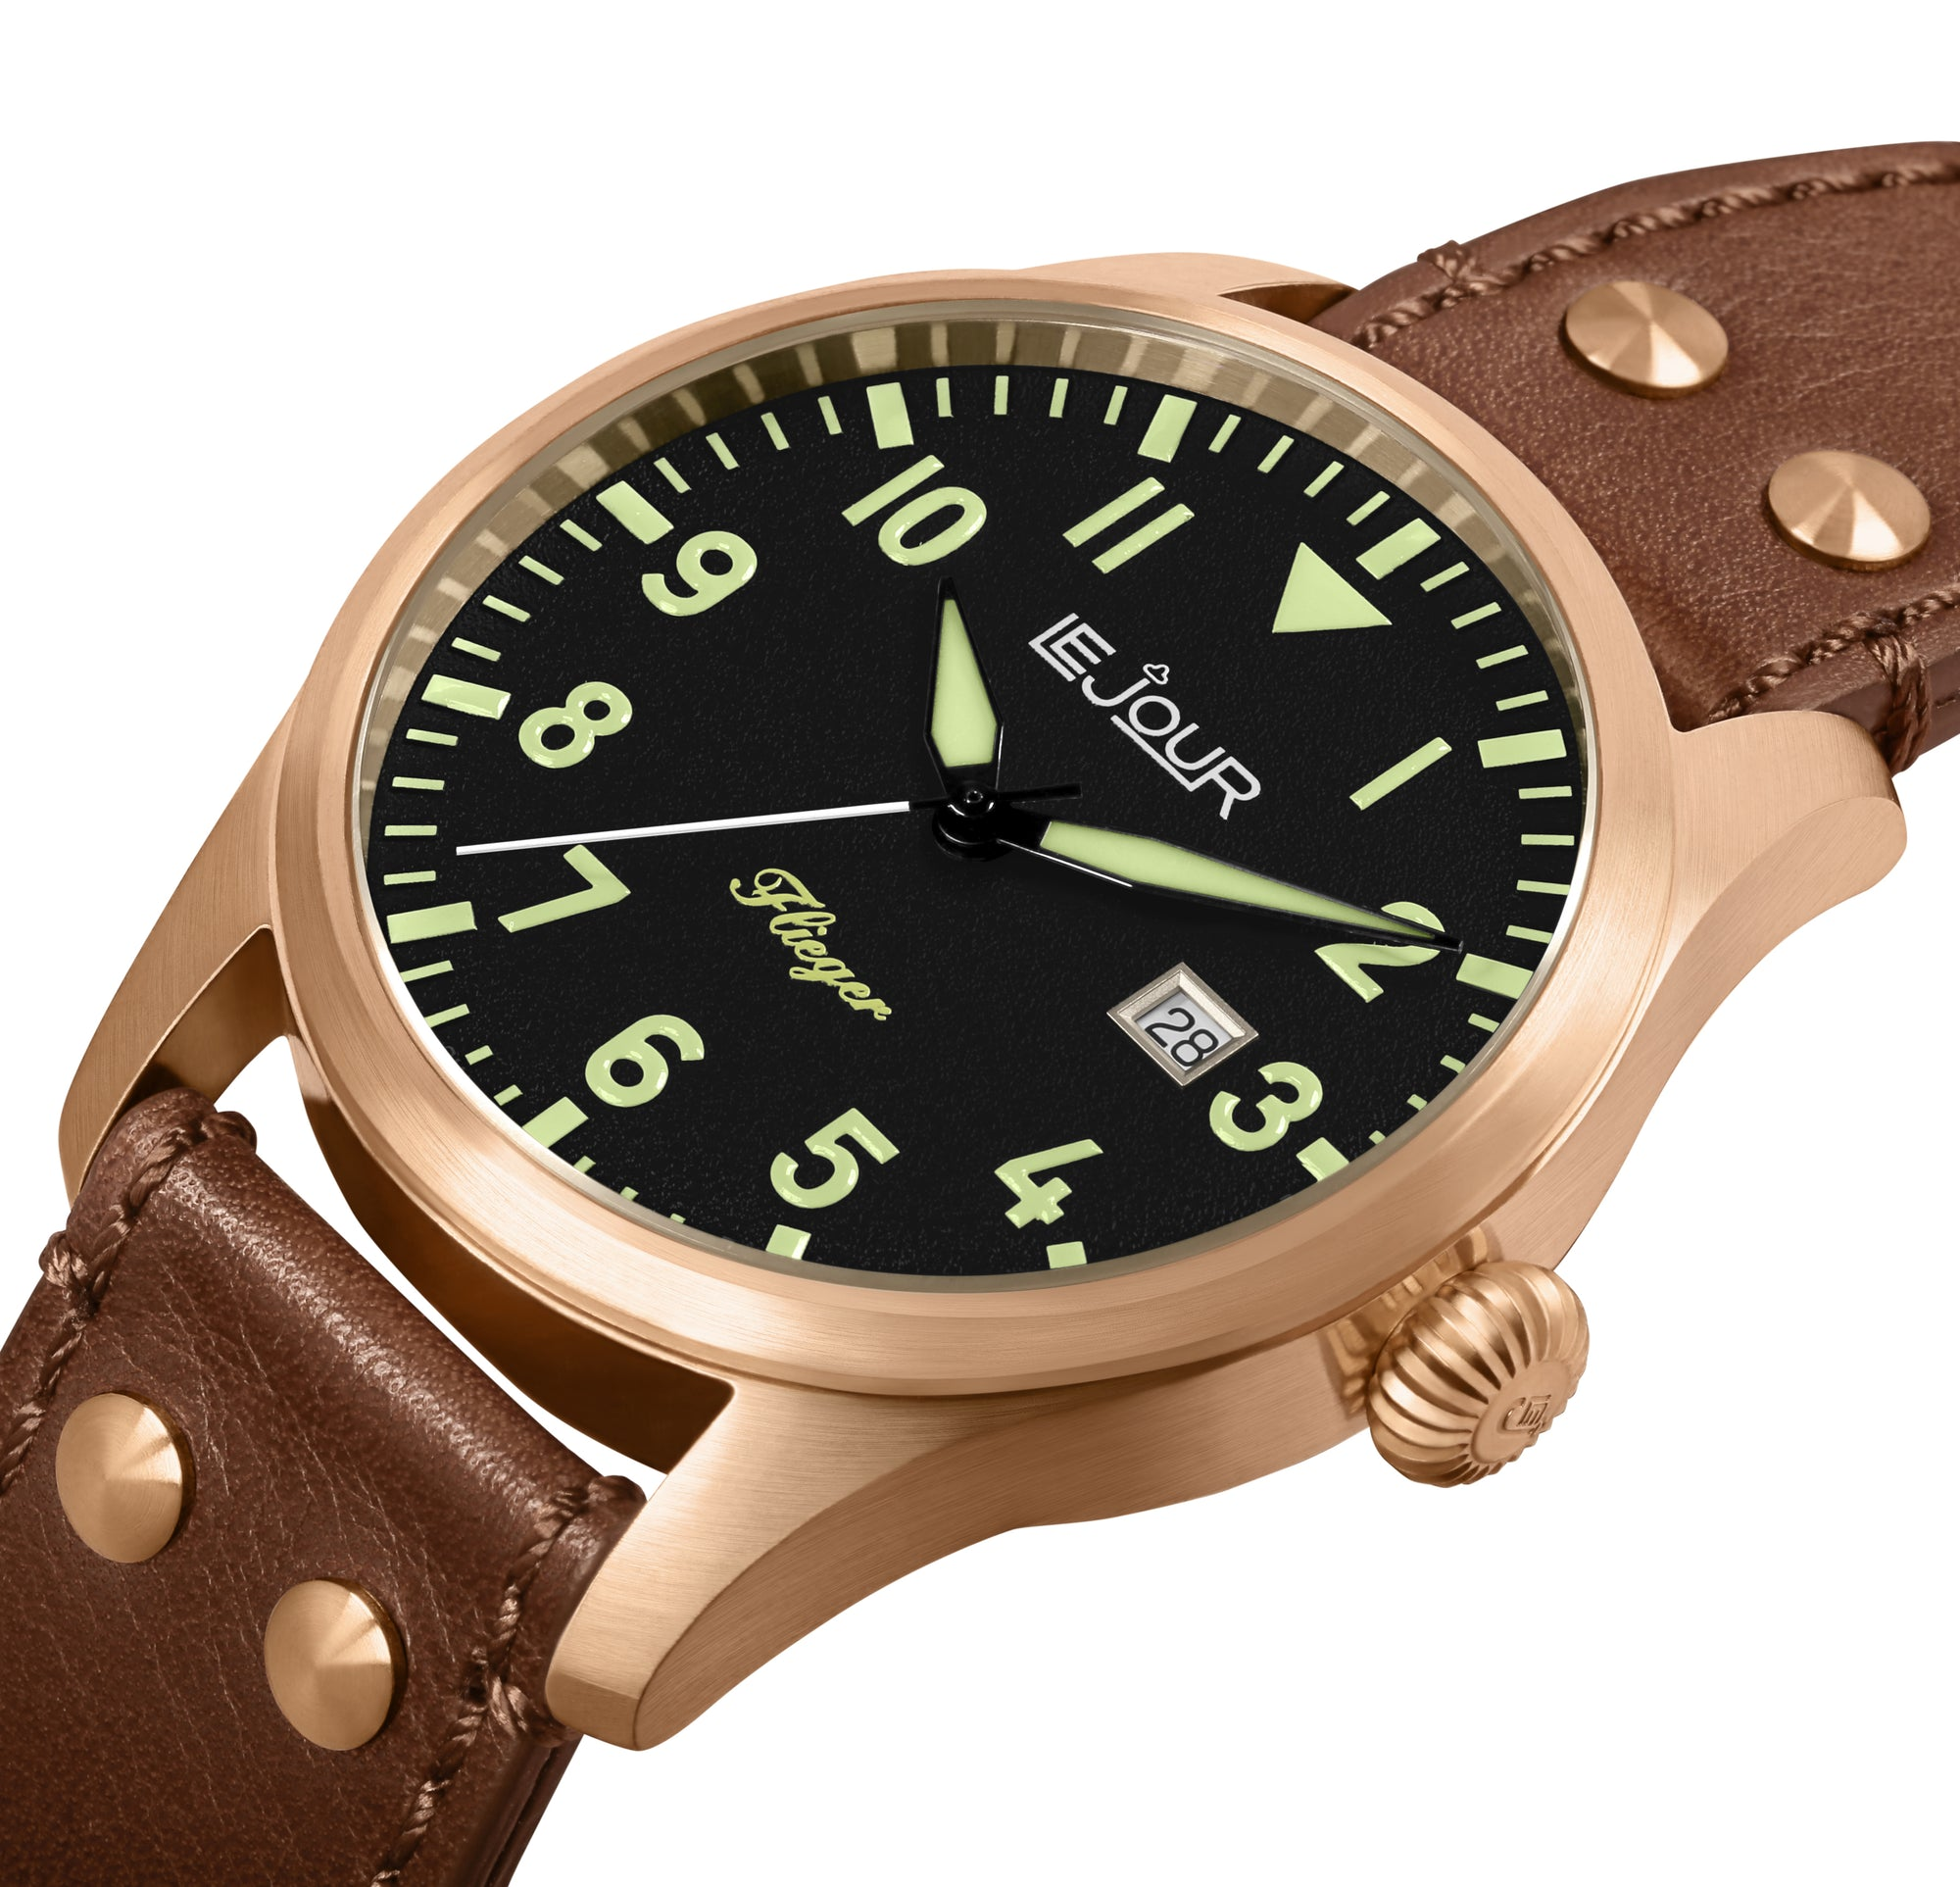 LE JOUR FLIEGER PILOT WATCH